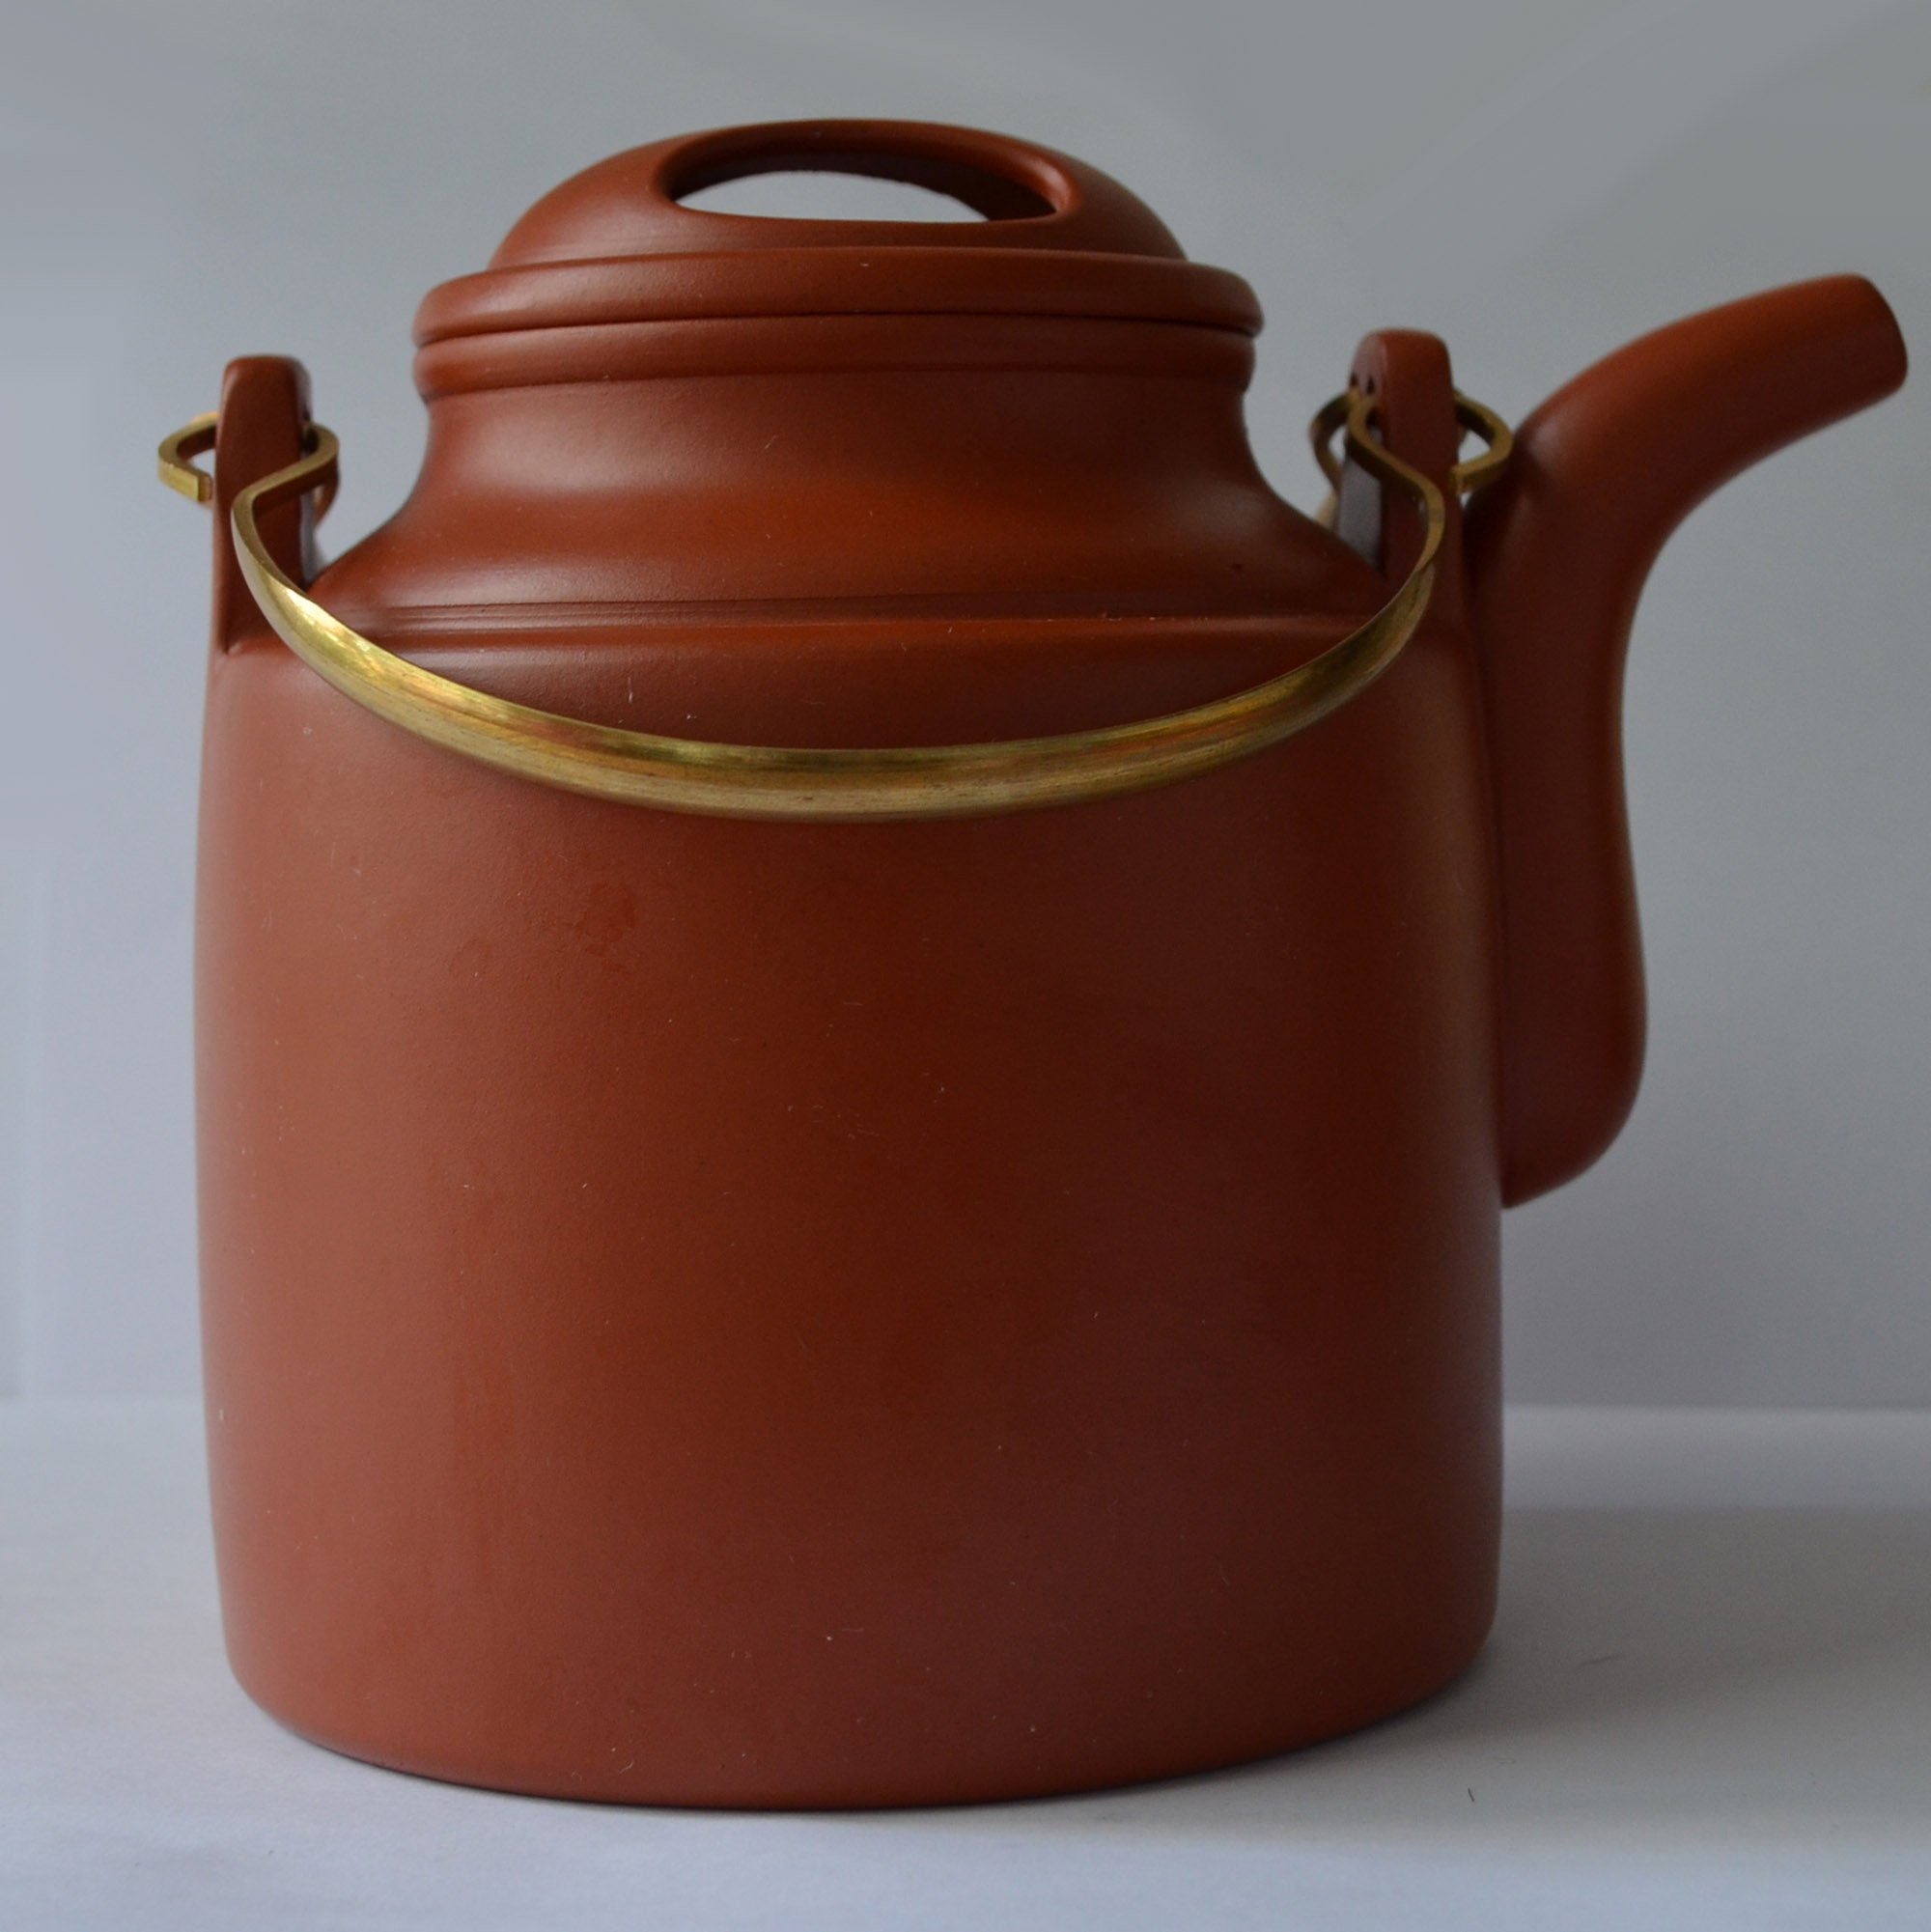 Teapot 22oz/650ml yantong Yixing barrel style Copper girder Zisha Qingshuini tea pots Natural mud, high temperature burn